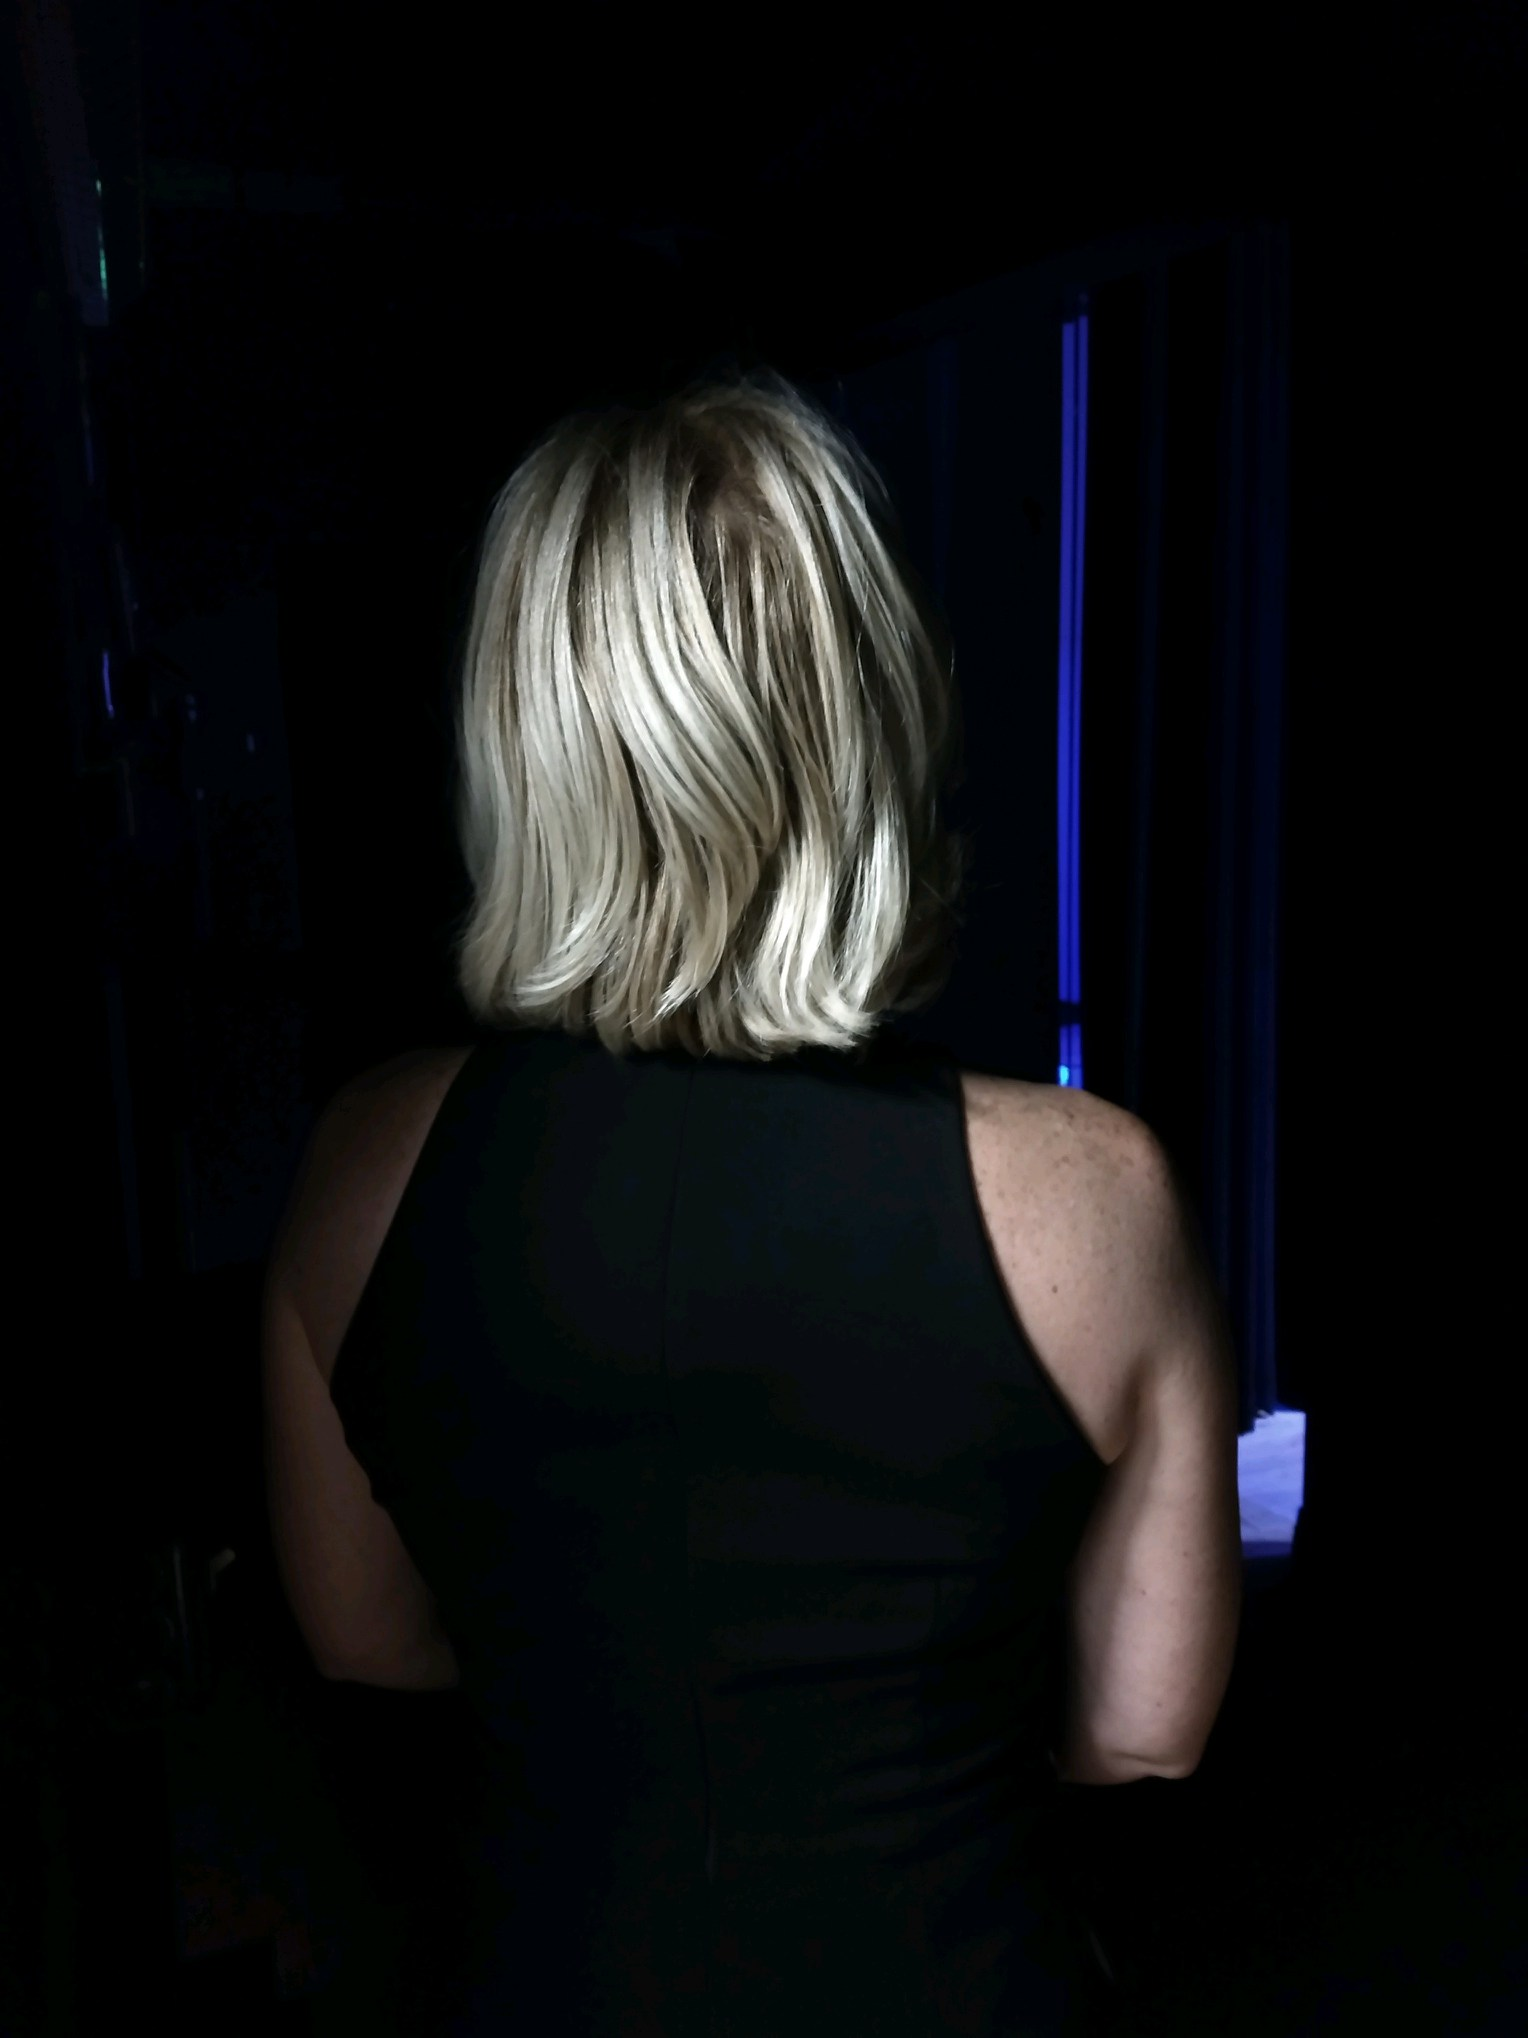 A Bold and Crazy Dream Becomes Reality - In this candid shot, Carrie awaits just behind the stage curtain while the announcer introduces her to the audience at Tedx Ocala in November 2018.